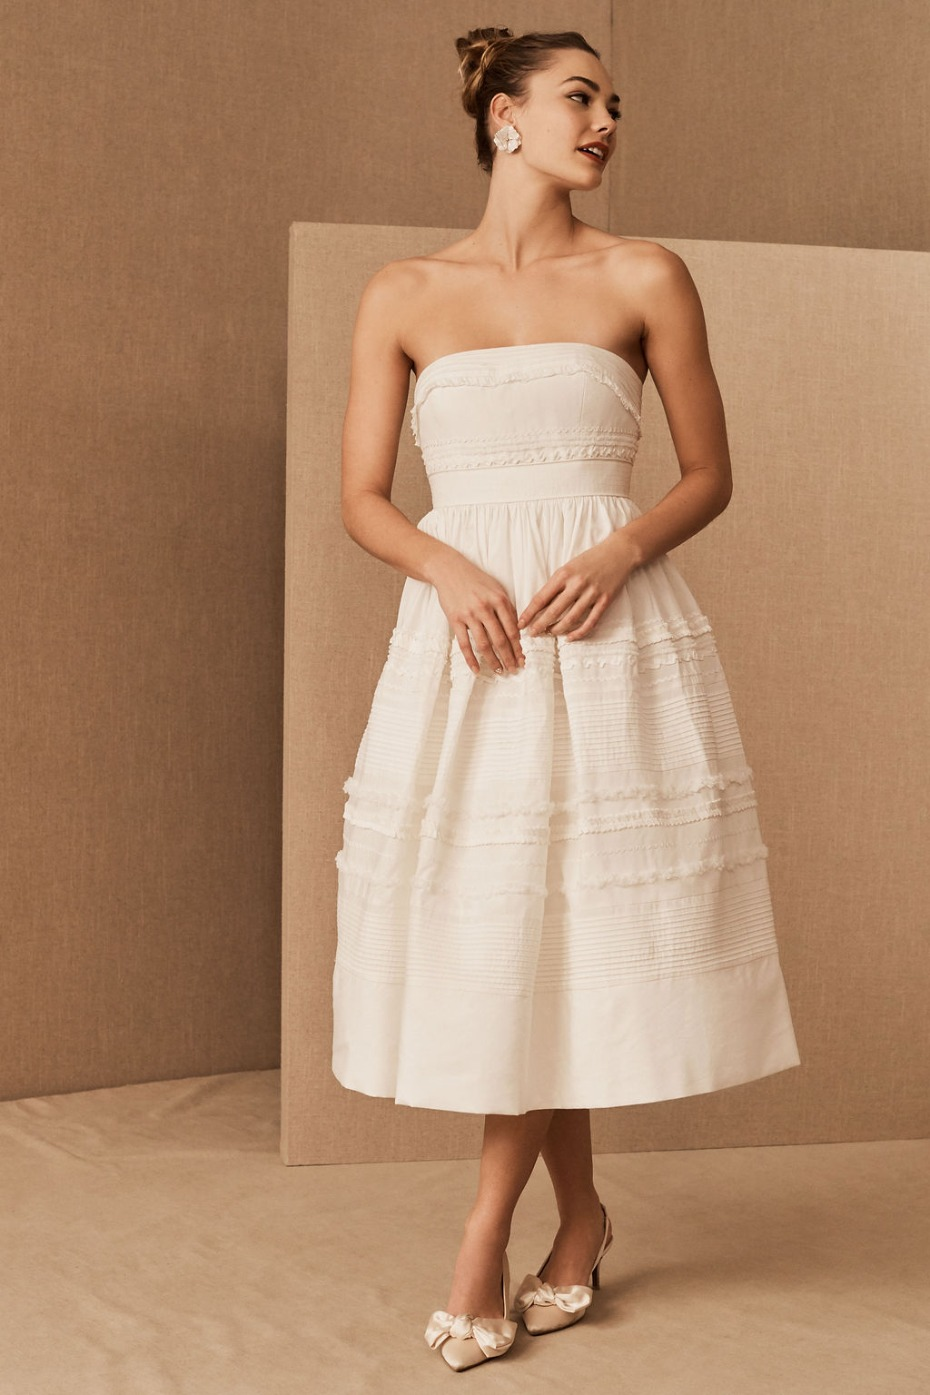 BHLDN Is Turning 10 on Valentine's Day and the Much-Loved Brand Is Giving US a Gift